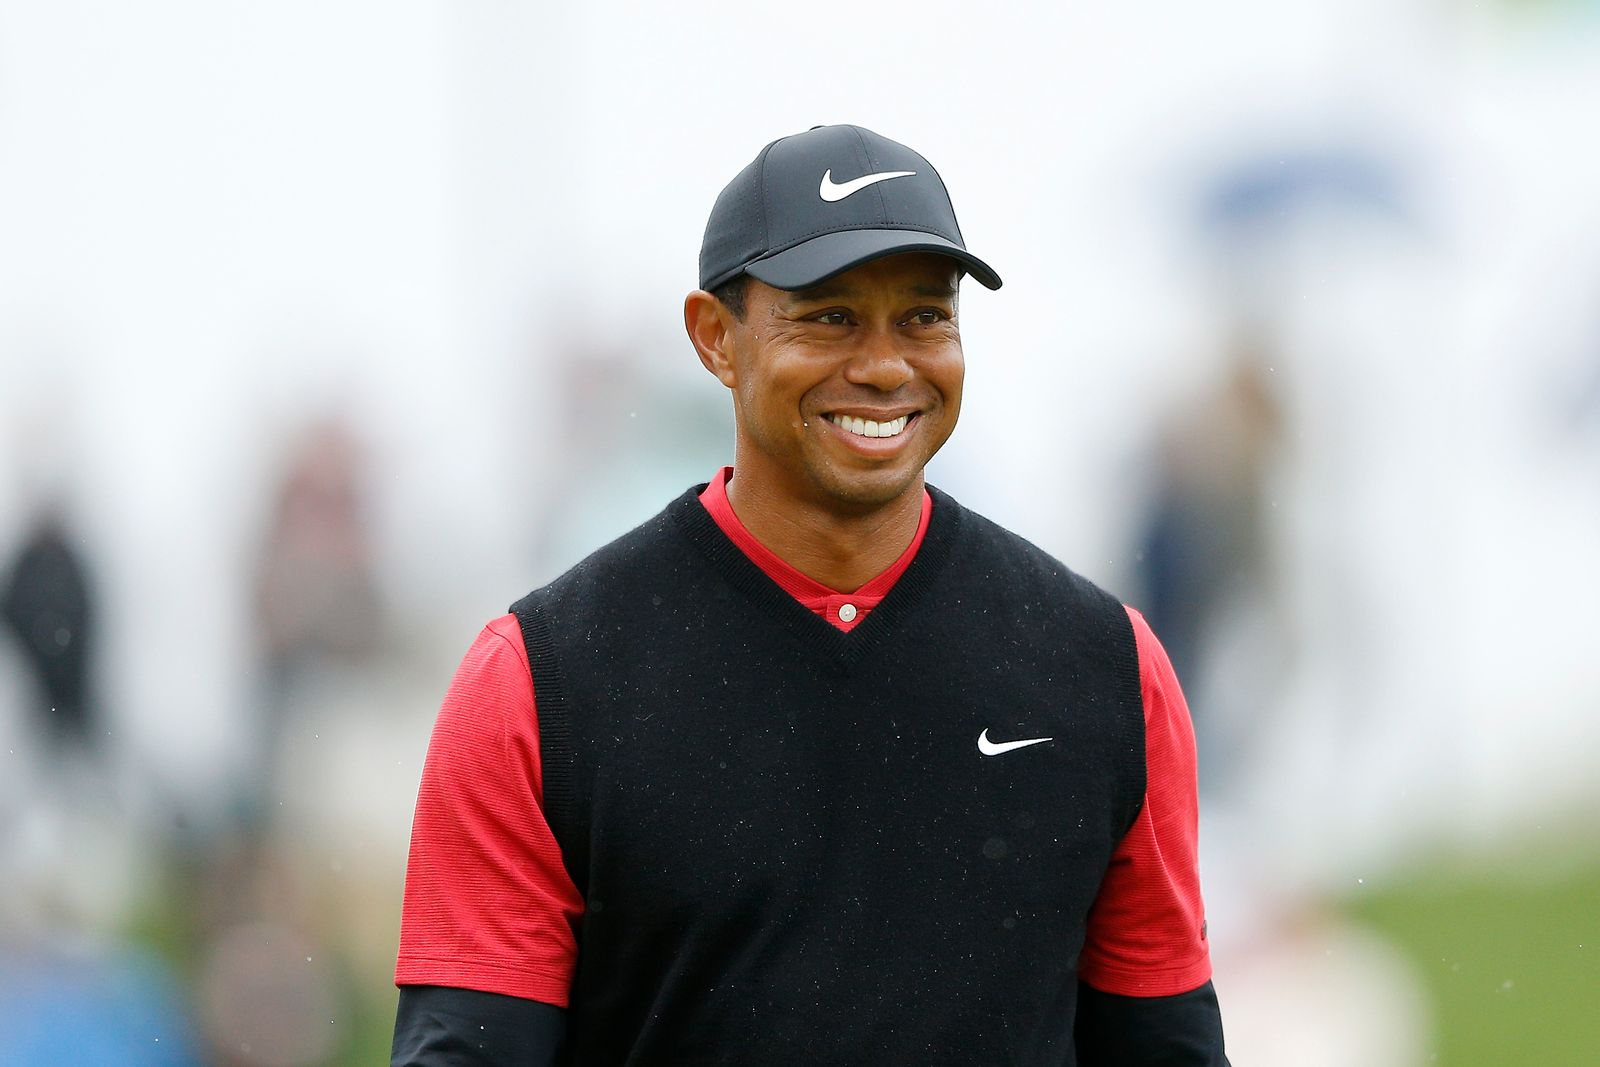 Tiger Woods' reaction after chipping in from the bunker on the third hole during the final round of The PLAYERS Championship at TPC Sawgrass on March 17, 2019. | Source: Getty Images